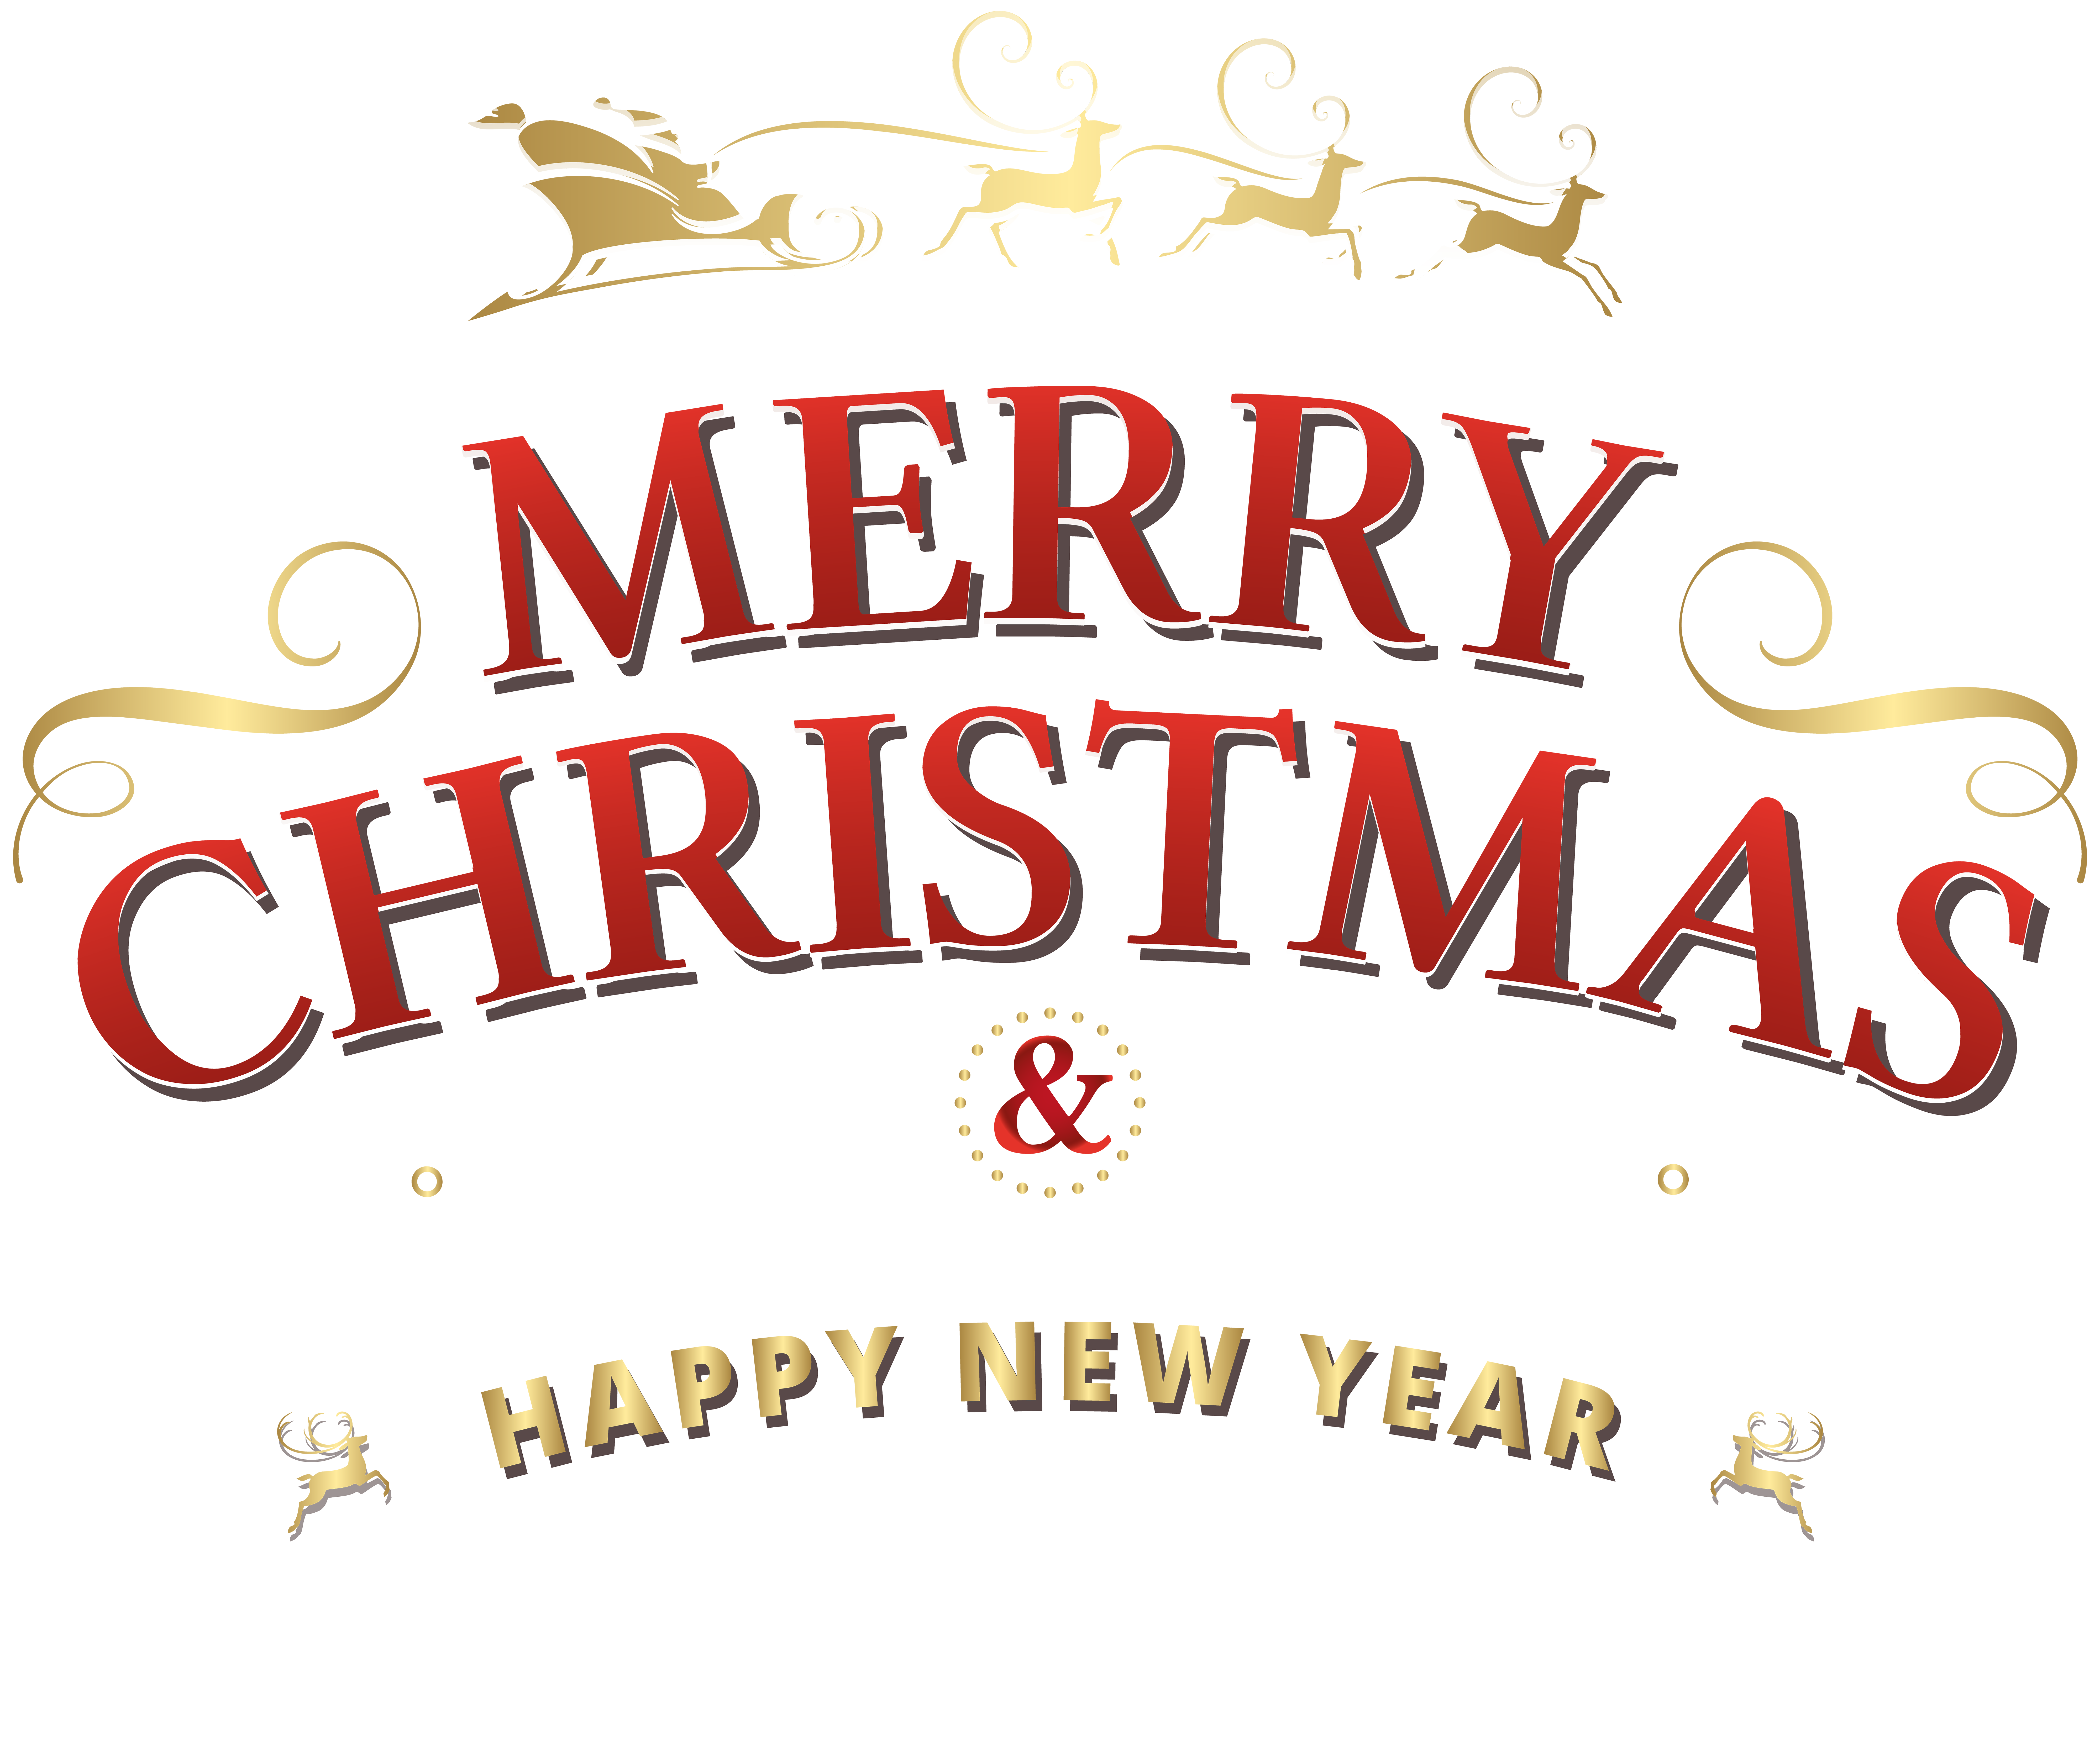 Free clipart merry christmas text image transparent Merry Christmas Text PNG Clip Art | Gallery Yopriceville - High ... image transparent